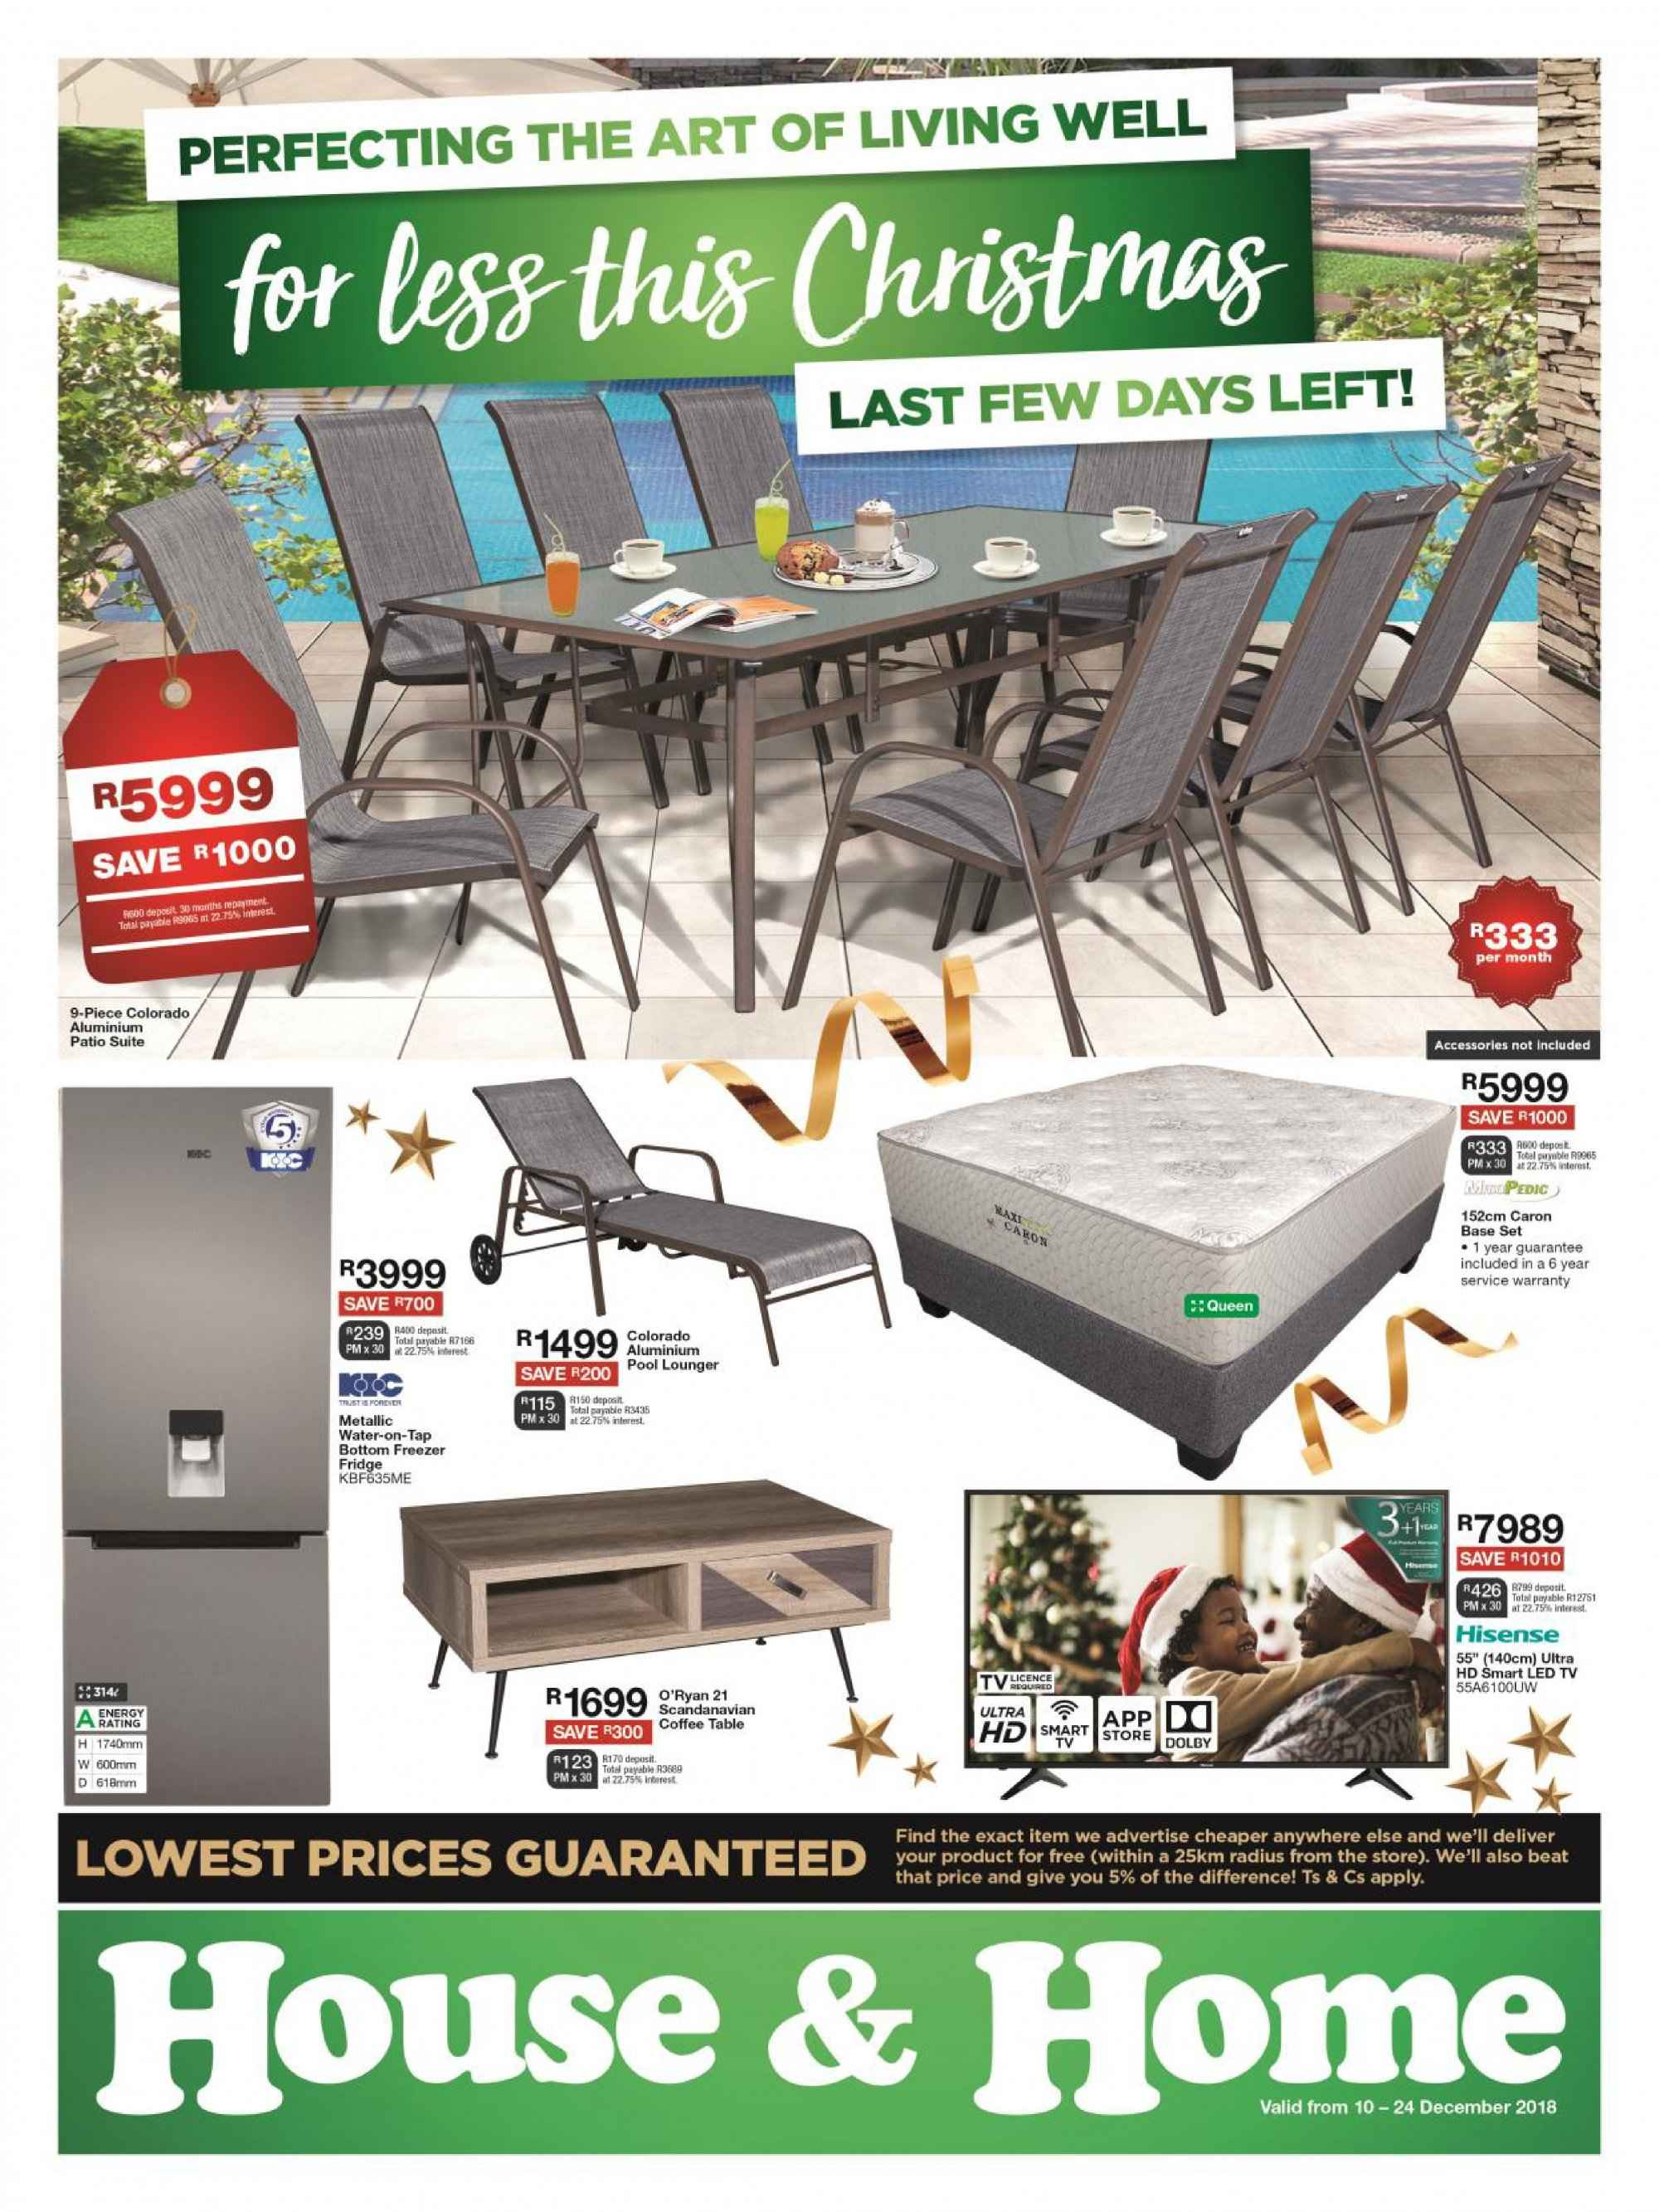 House & Home special - 12.10.2018 - 12.24.2018 - Sales products - bottom, coffee, coffee table, freezer, led tv, fridge, table, uhd tv, ultra hd, patio, water. Page 1.